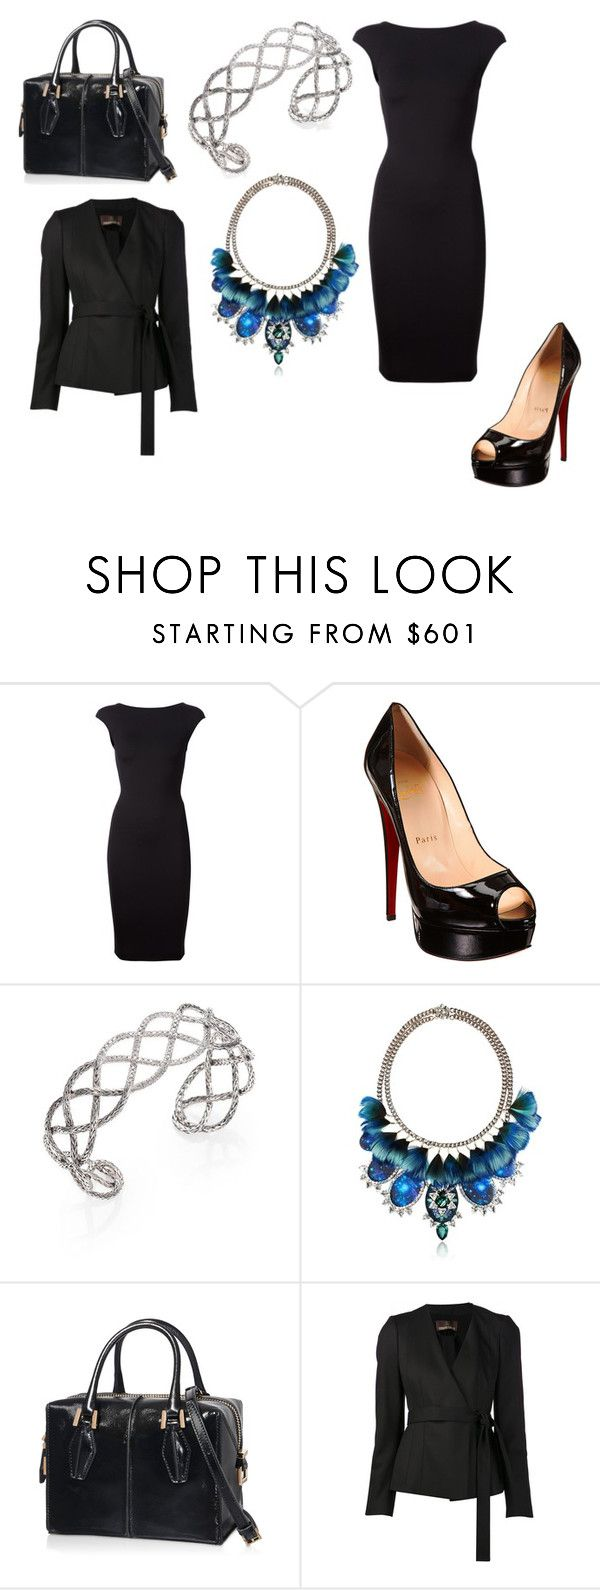 """Untitled #26281"" by edasn12 ❤ liked on Polyvore featuring The Row, Christian Louboutin, John Hardy, Bijoux de Famille, Tod's and Roberto Cavalli"